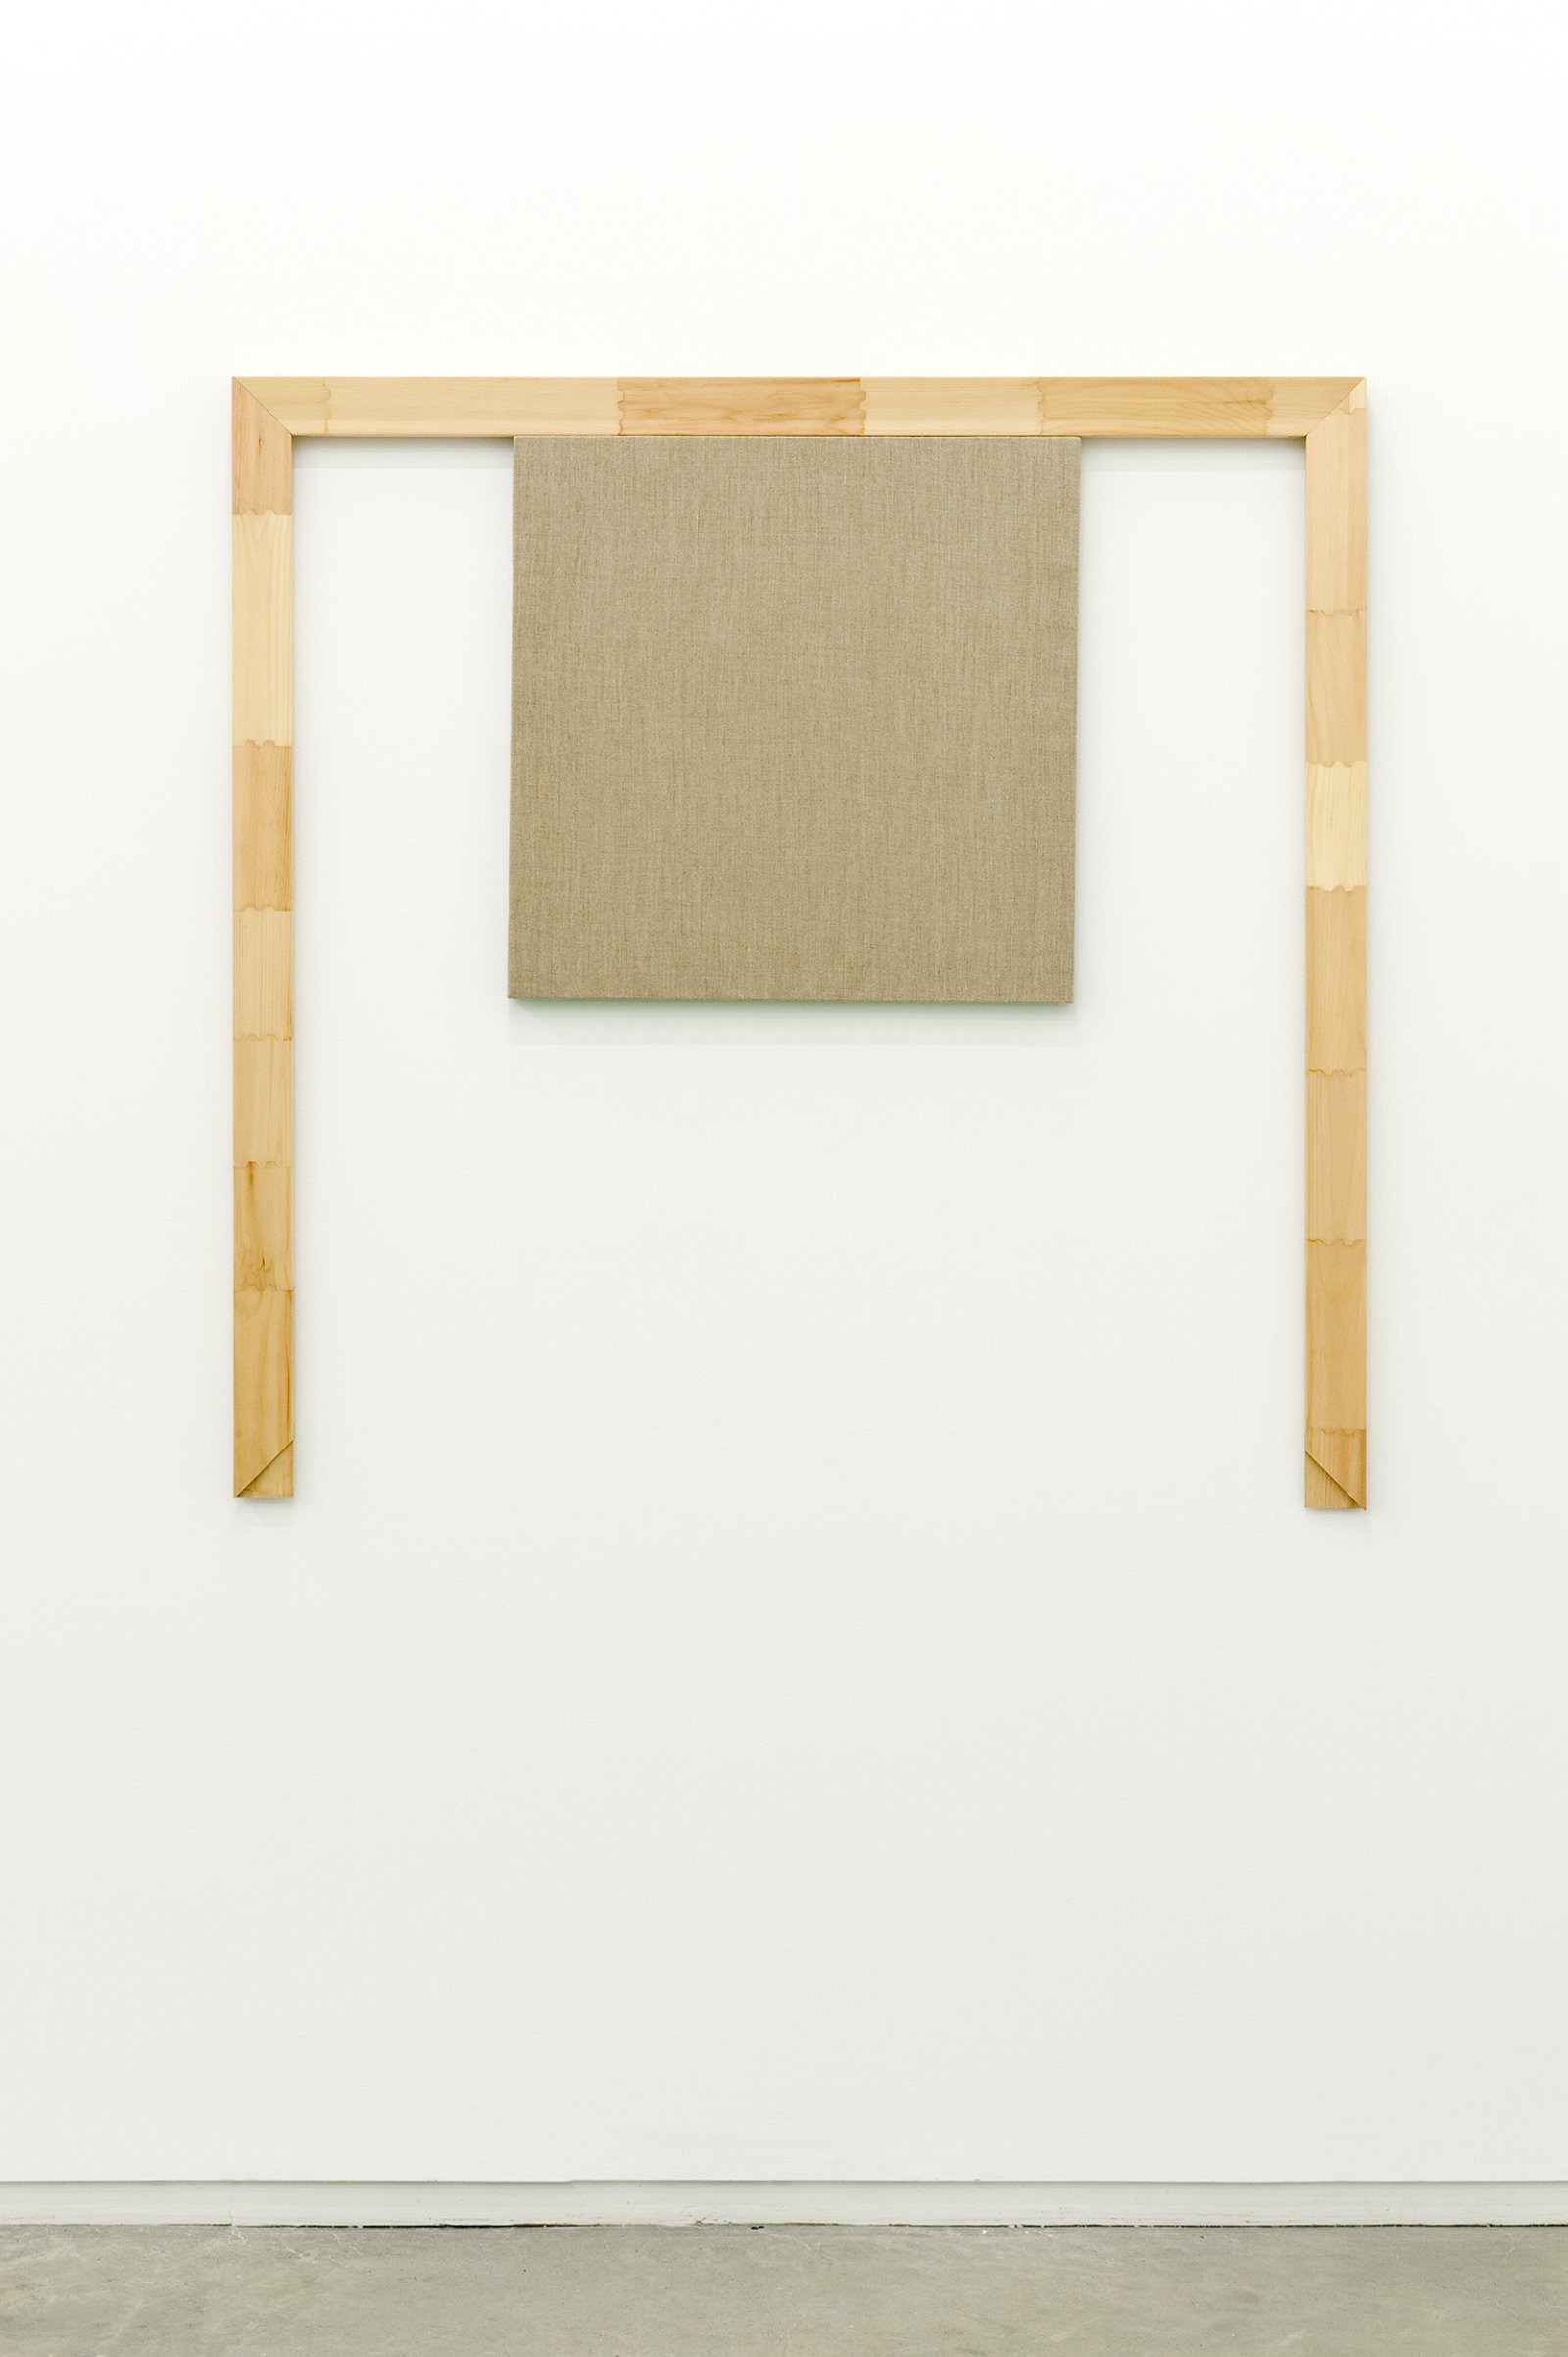 ​Arabella Campbell, We have pictures because we have walls, 2011, linen panel, stretcher bars, 48 x 48 x 1 (122 x 122 x 3 cm) by